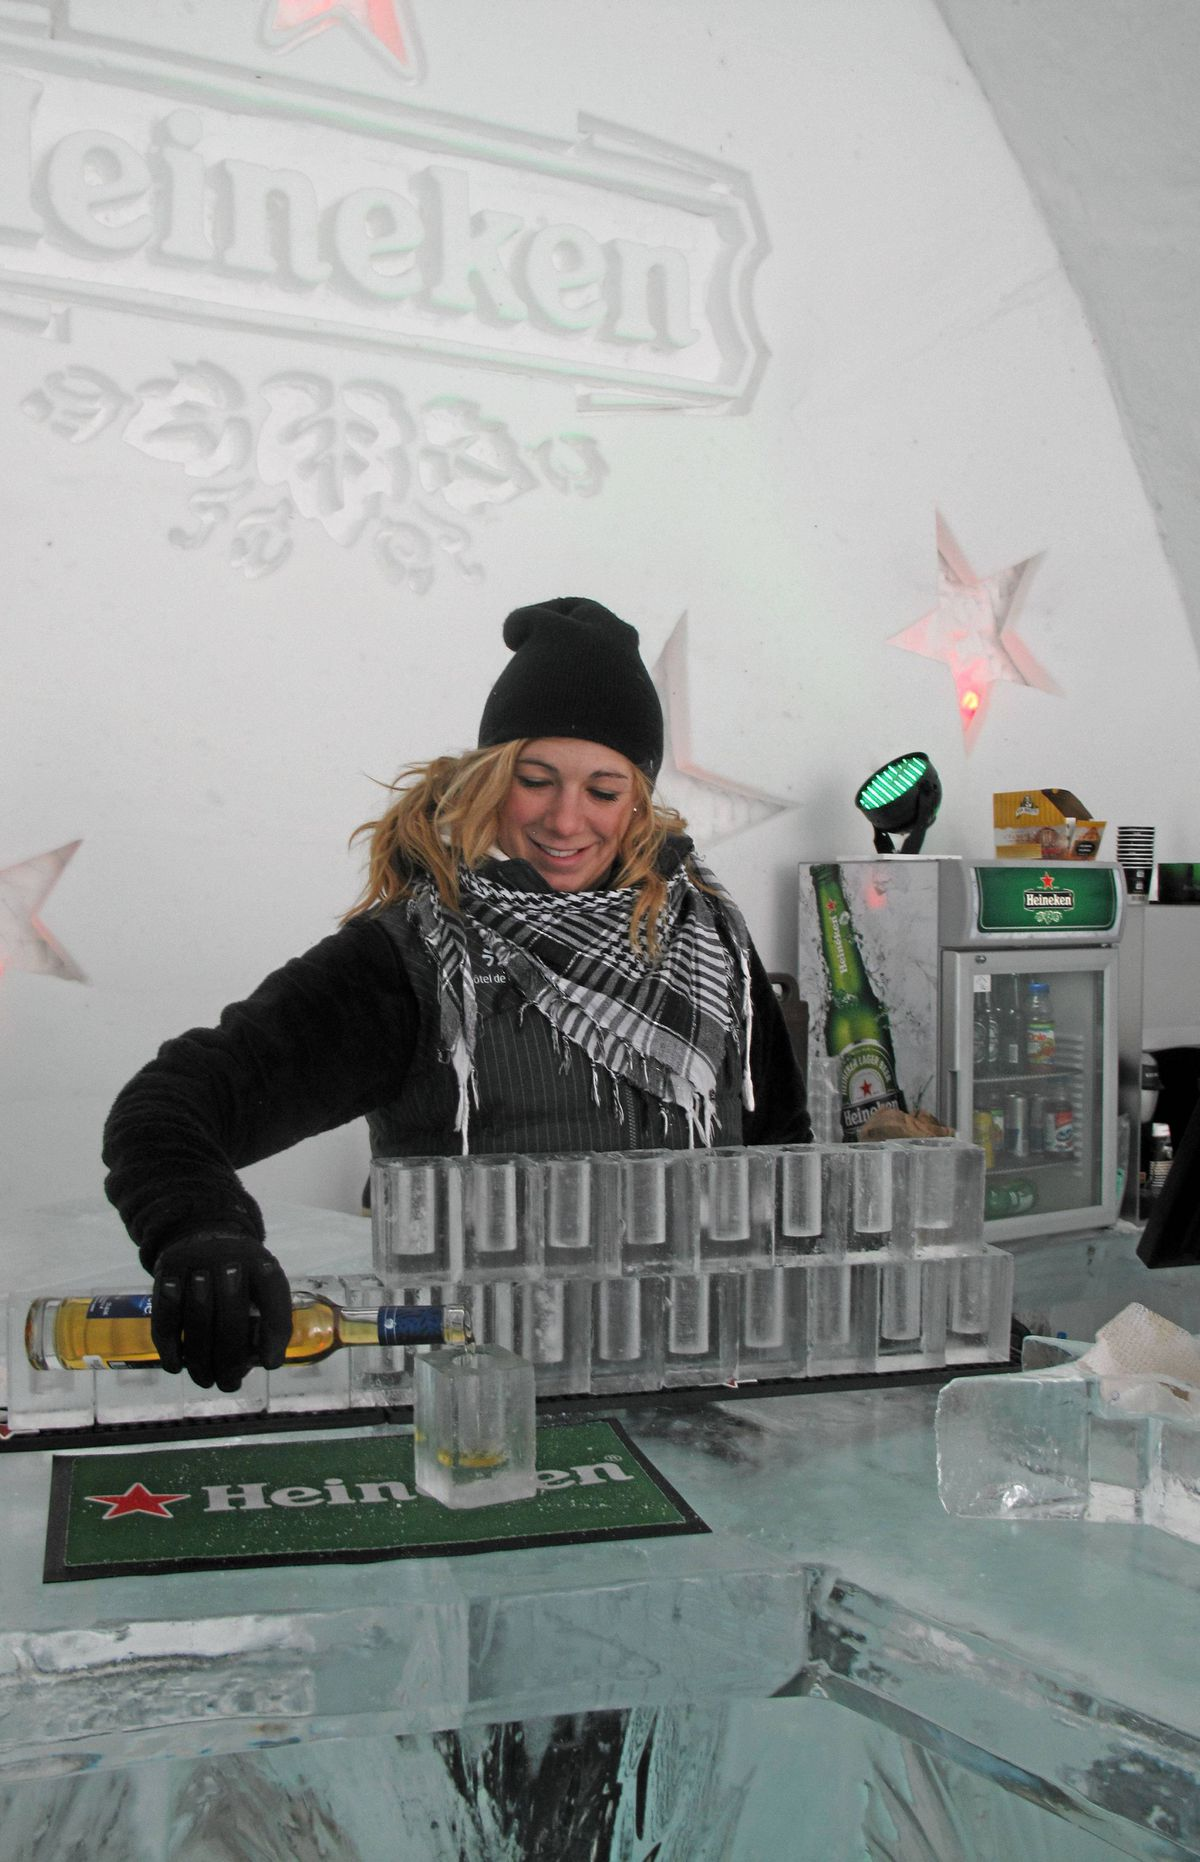 Vanessa Provencher pours the signature cider drink in, not on, the rocks.